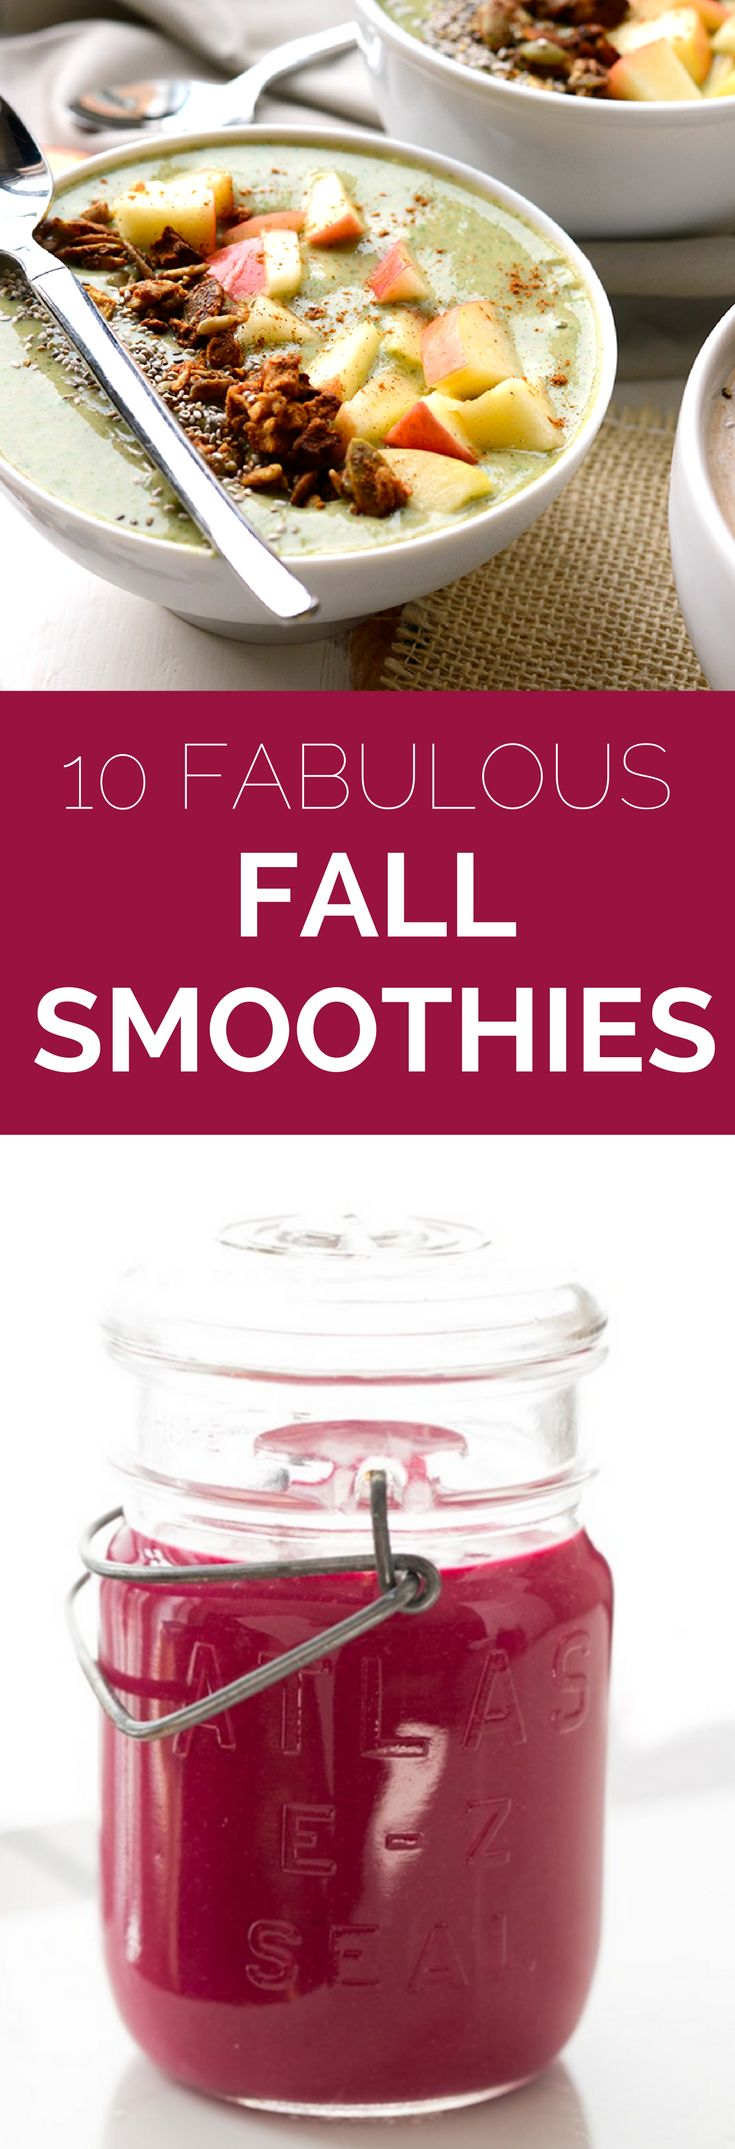 So long, tropical flavors! It's time to upgrade your smoothie to reflect the season. We've got 10 refreshing smoothie recipes to to help you savor fall. // spryliving.com